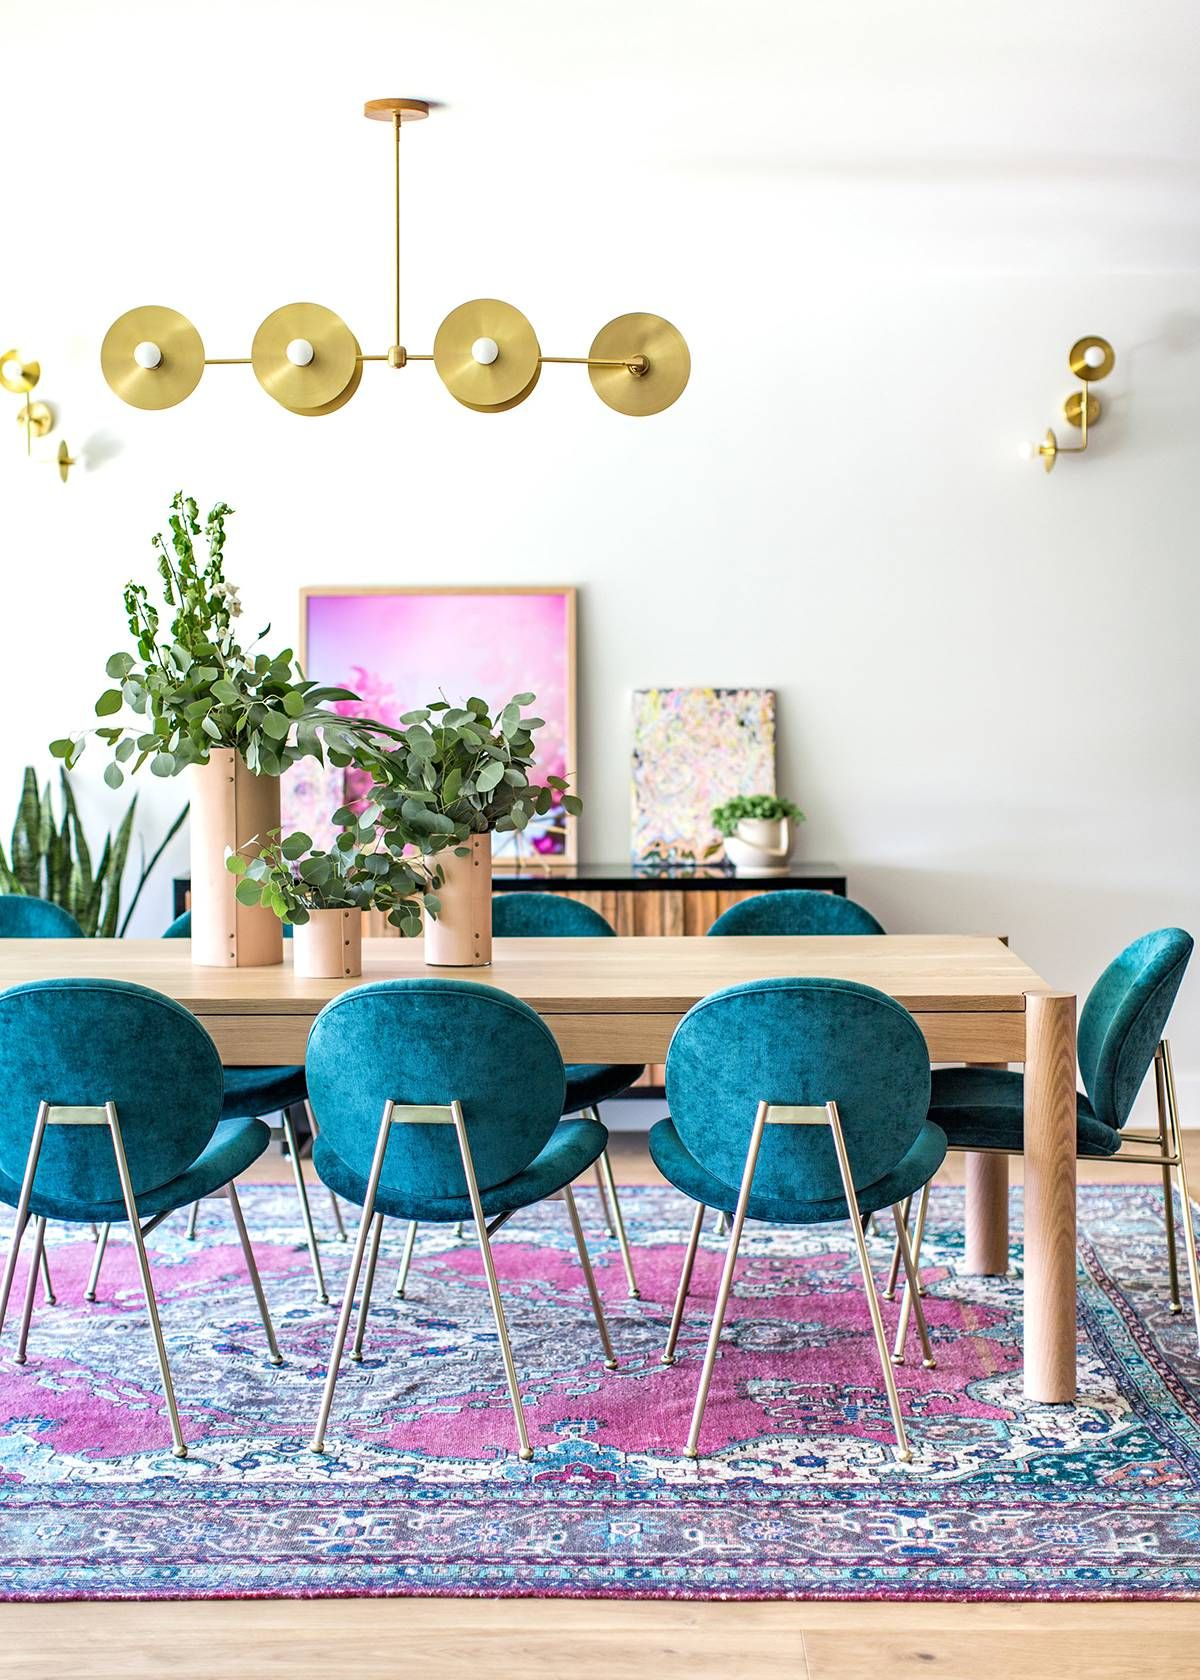 Step Inside the 3700-Square-Foot Home That Made Our Jaws Drop